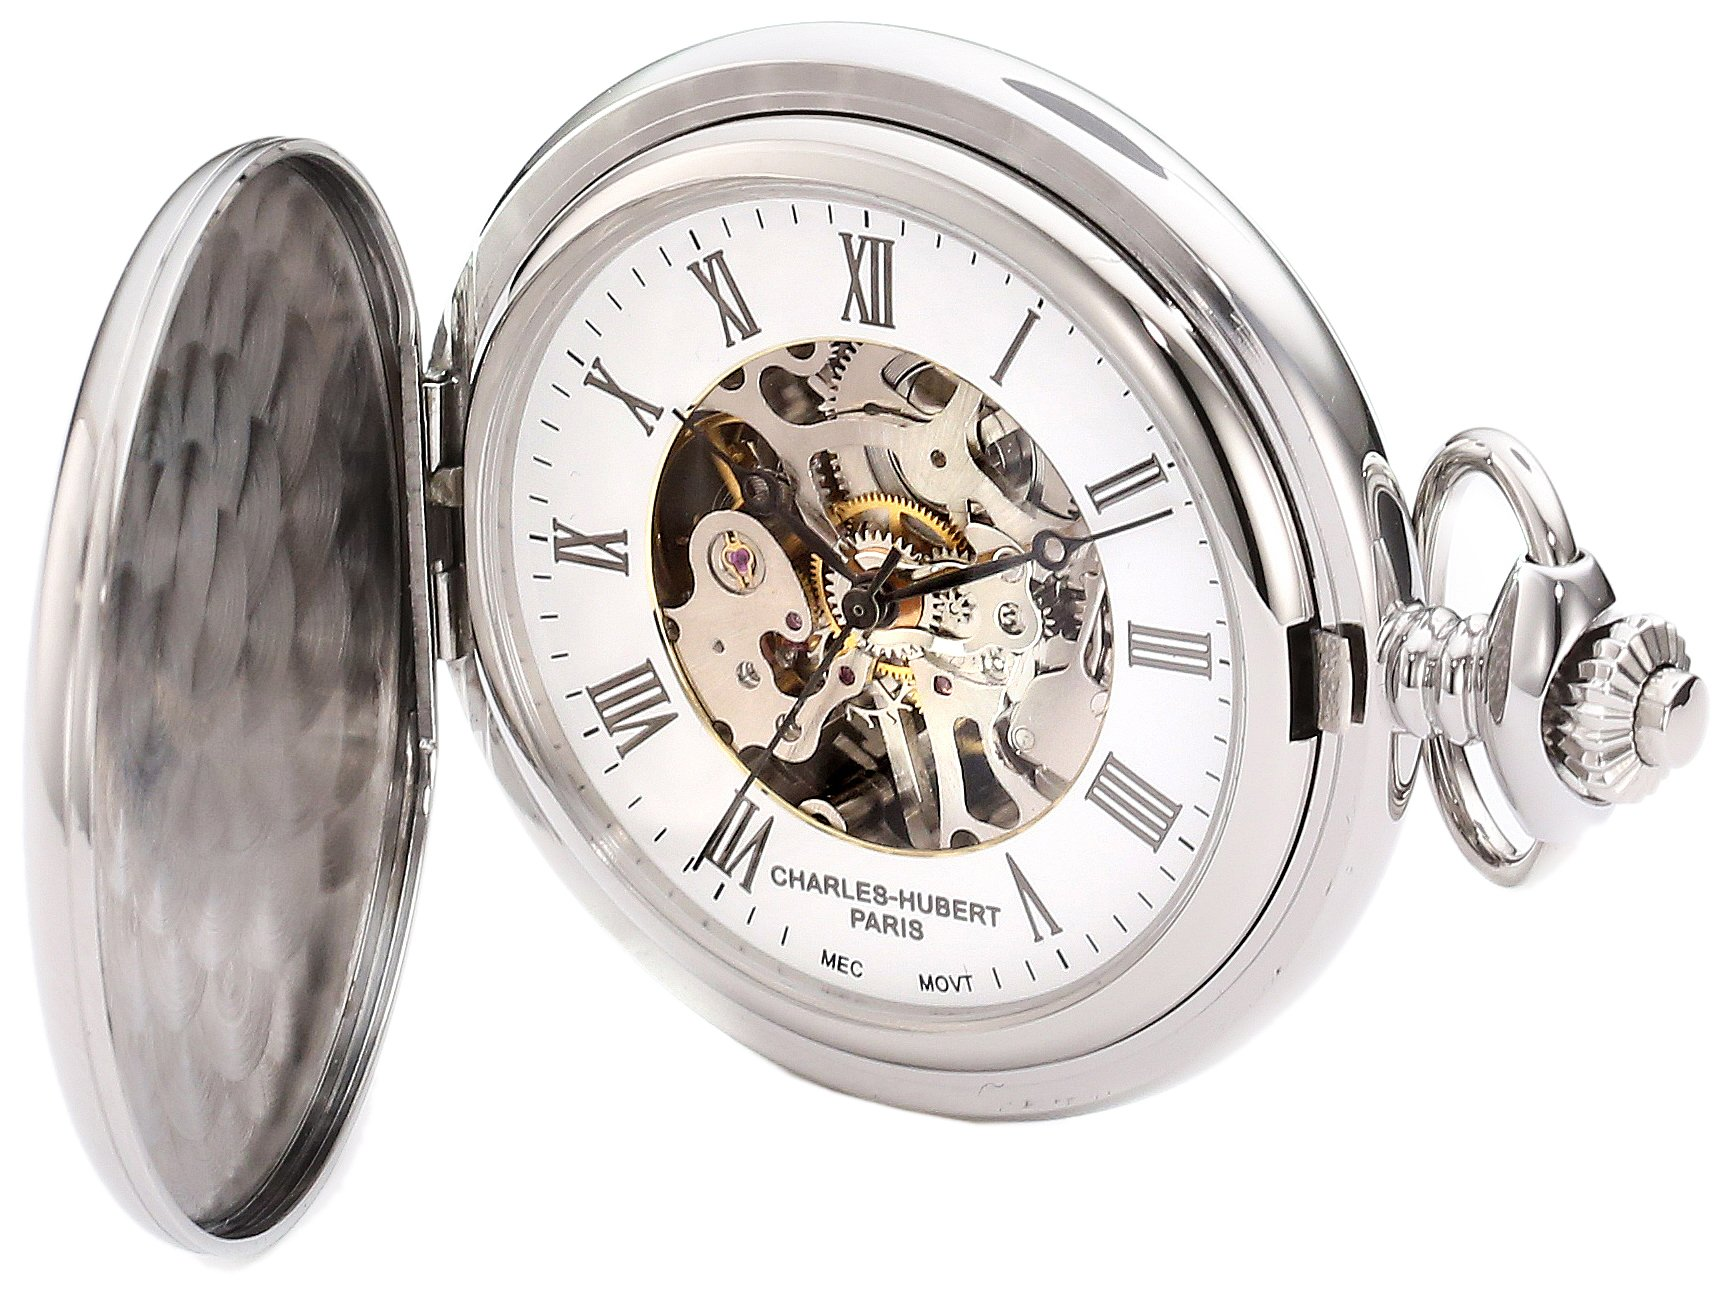 Charles-Hubert, Paris 3917 Premium Collection Stainless Steel Mechanical Pocket Watch